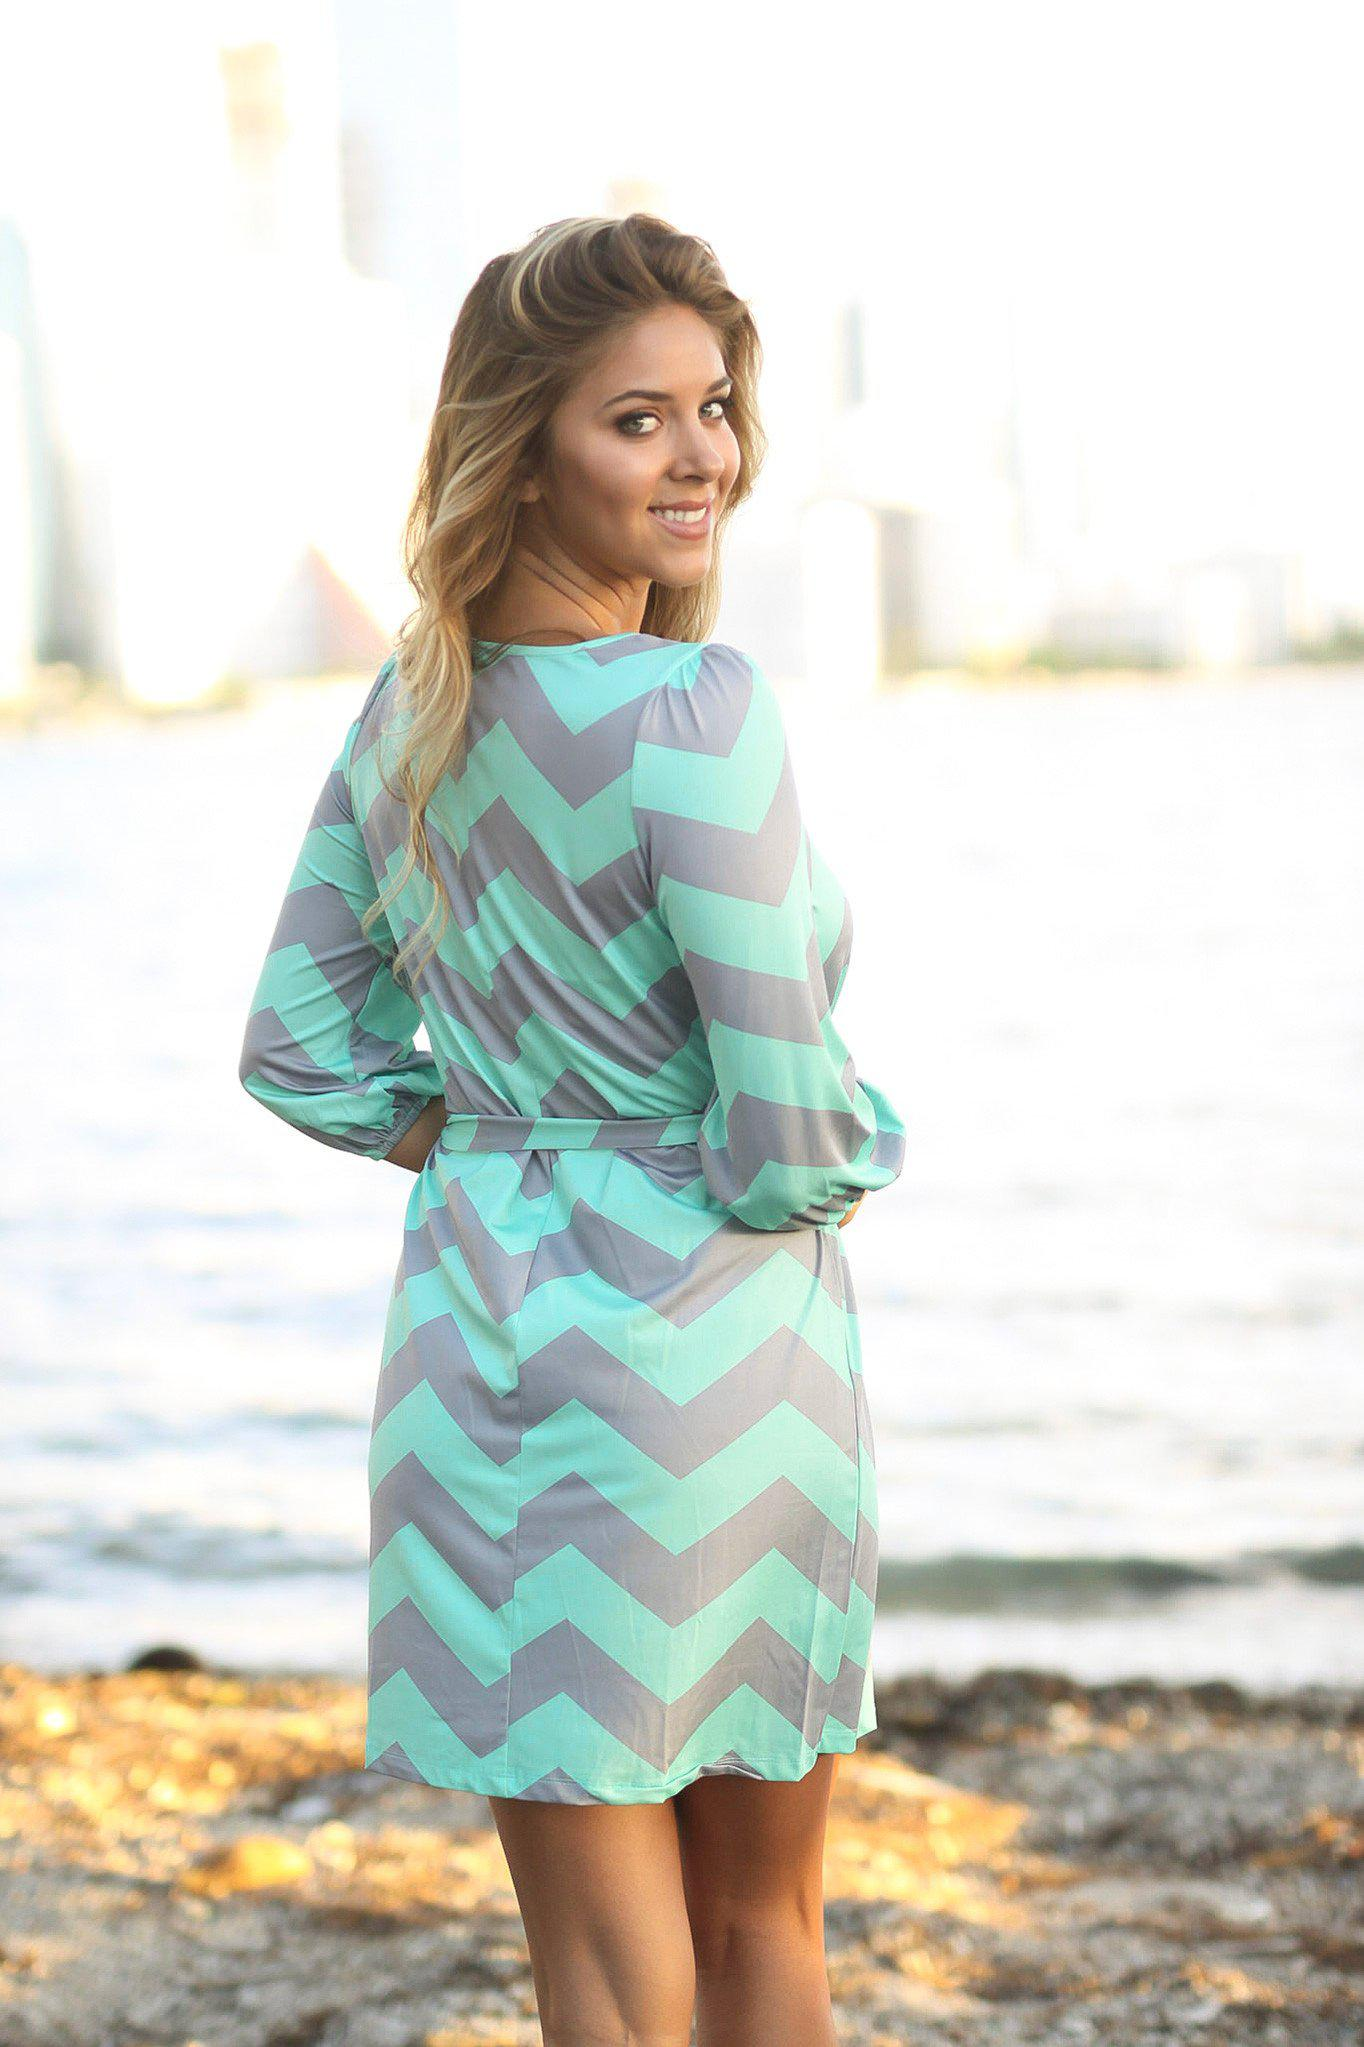 Shop for chevron dress online at Target. Free shipping on purchases over $35 and save 5% every day with your Target REDcard.